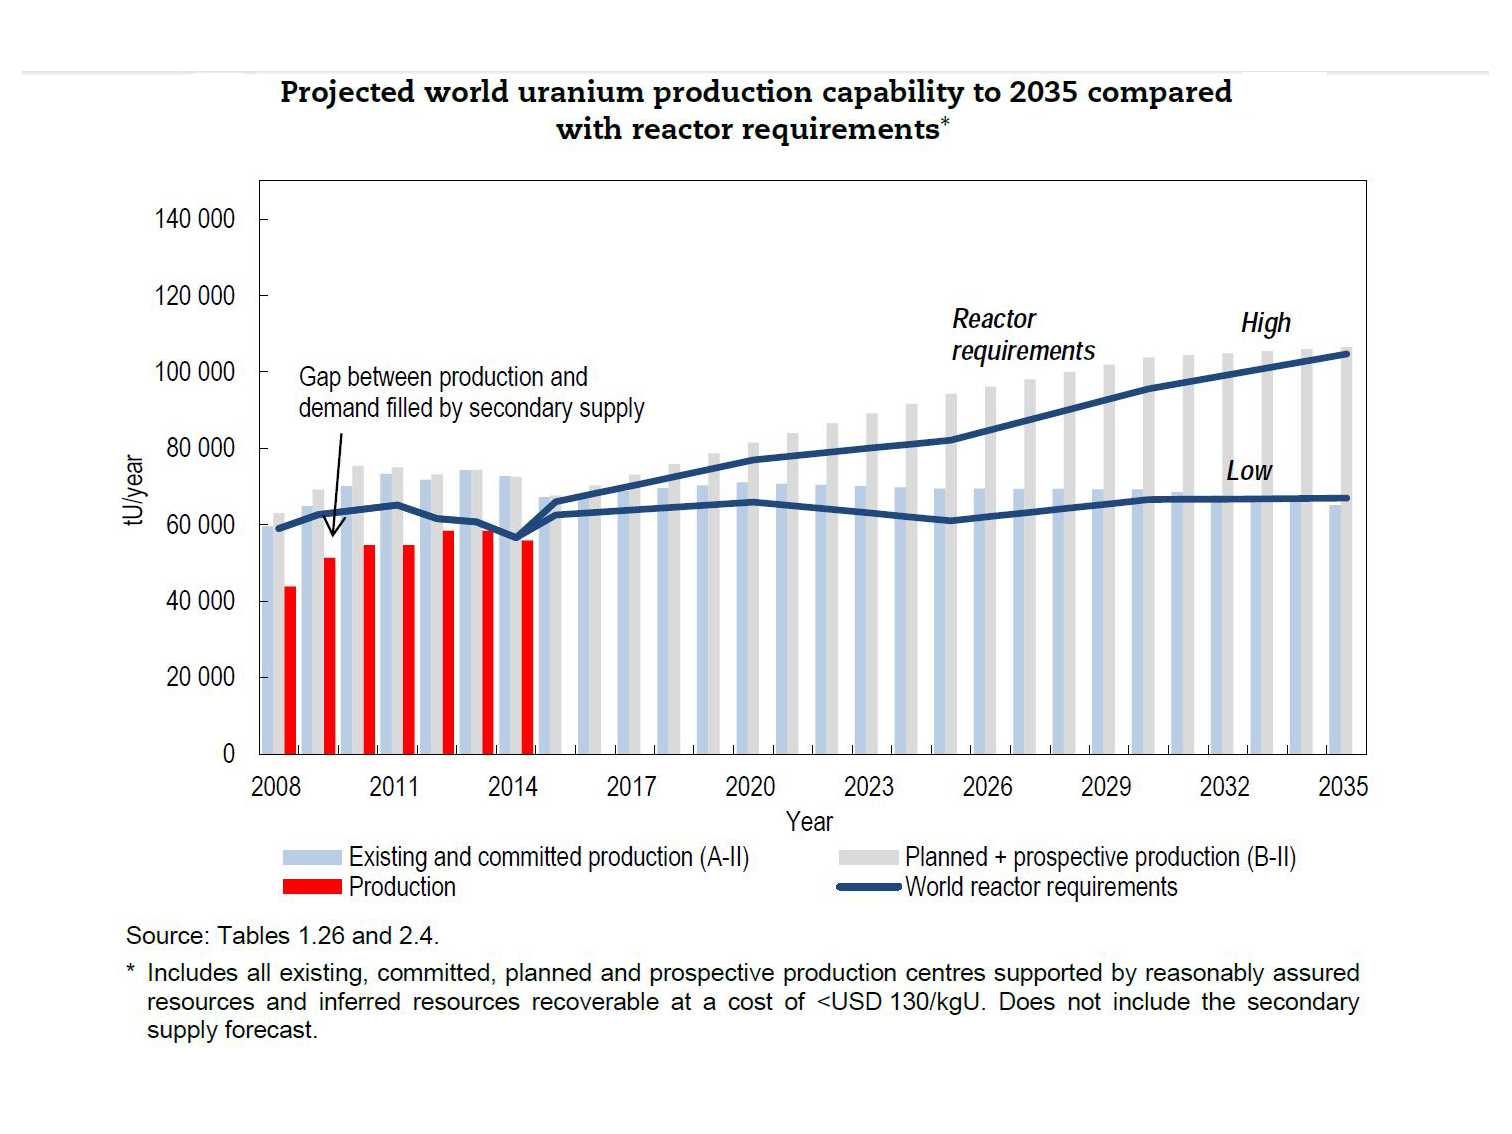 Projected world uranium production capability to 2035 compared with reactor requirements, Uranium 2016